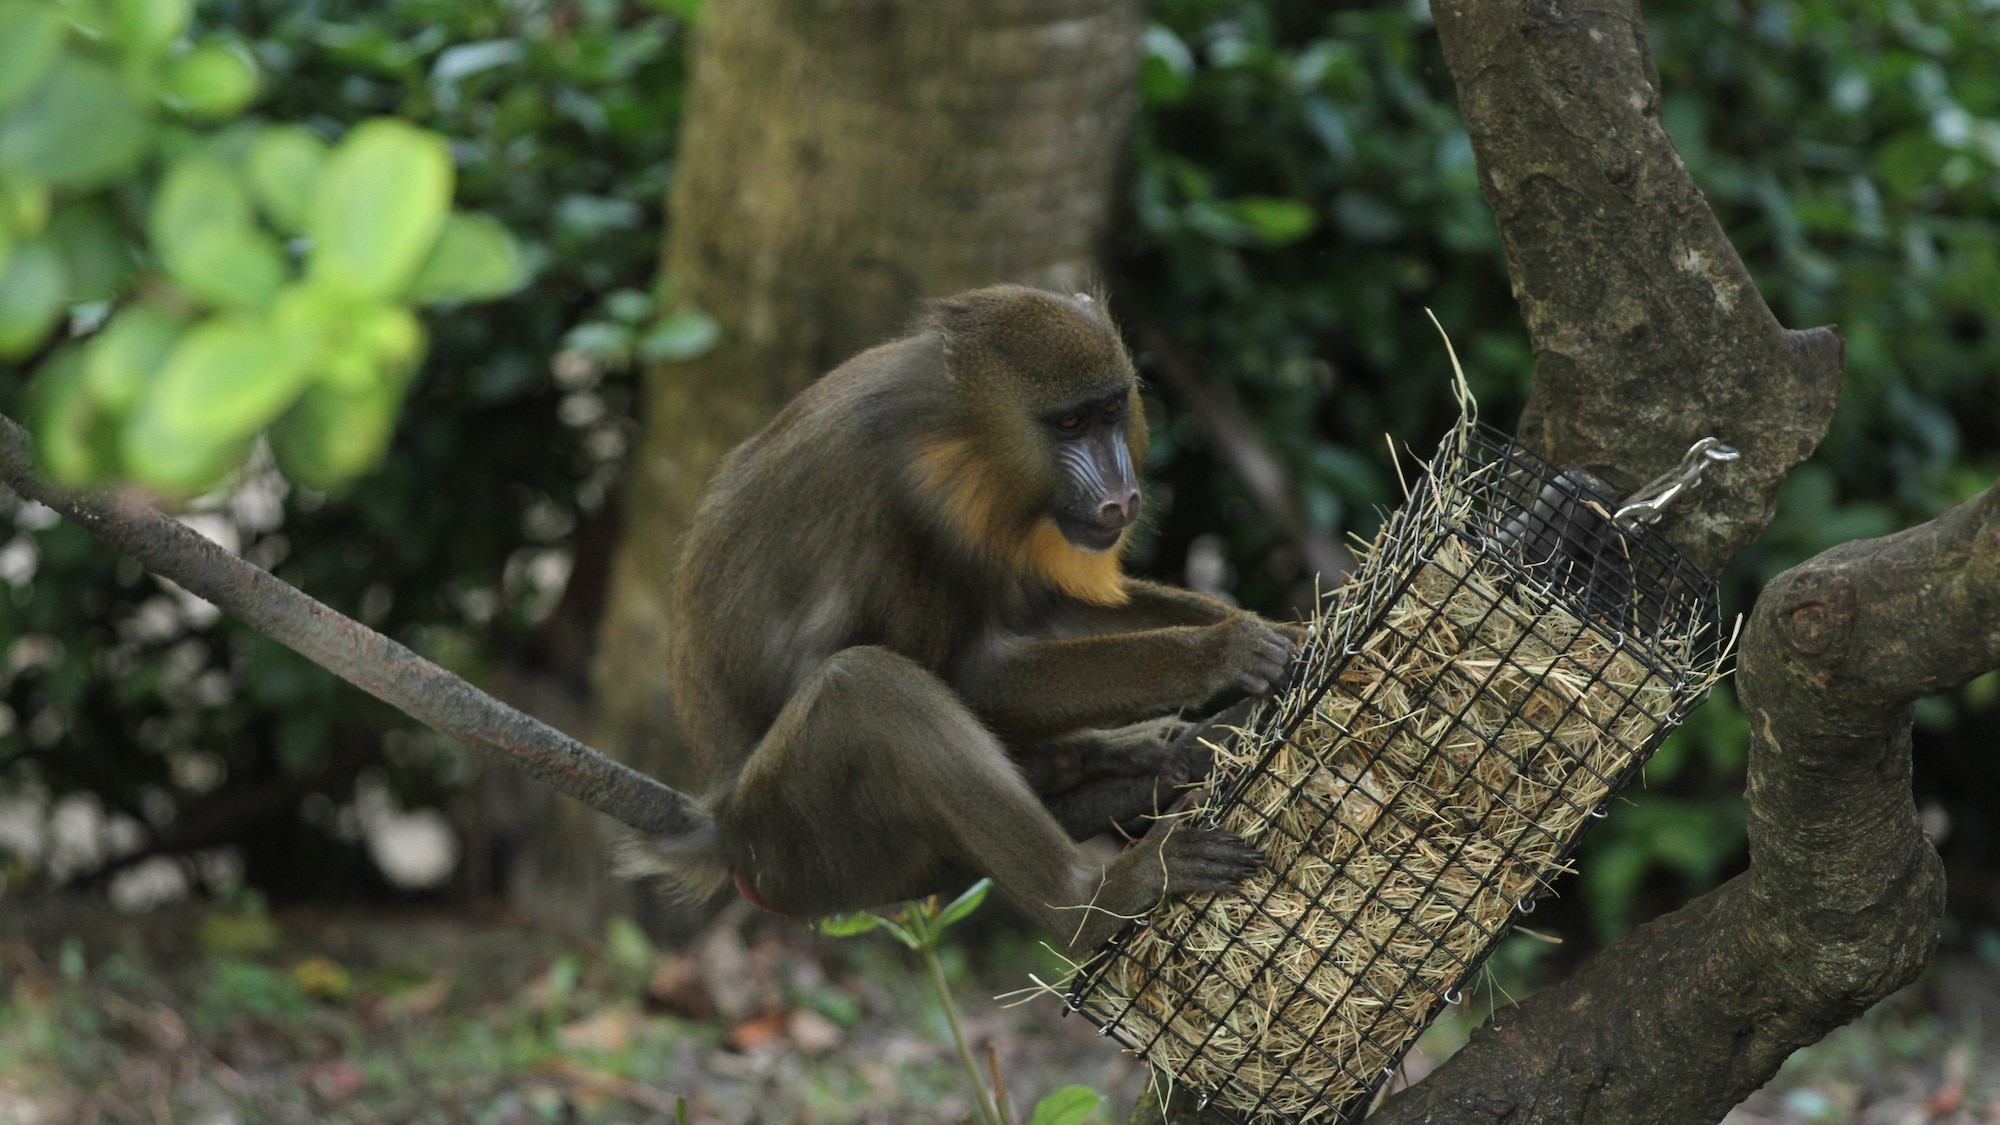 Mandrill investigates an enrichment item placed in the enclosure by the keepers as source of food and stimulation. (Disney)